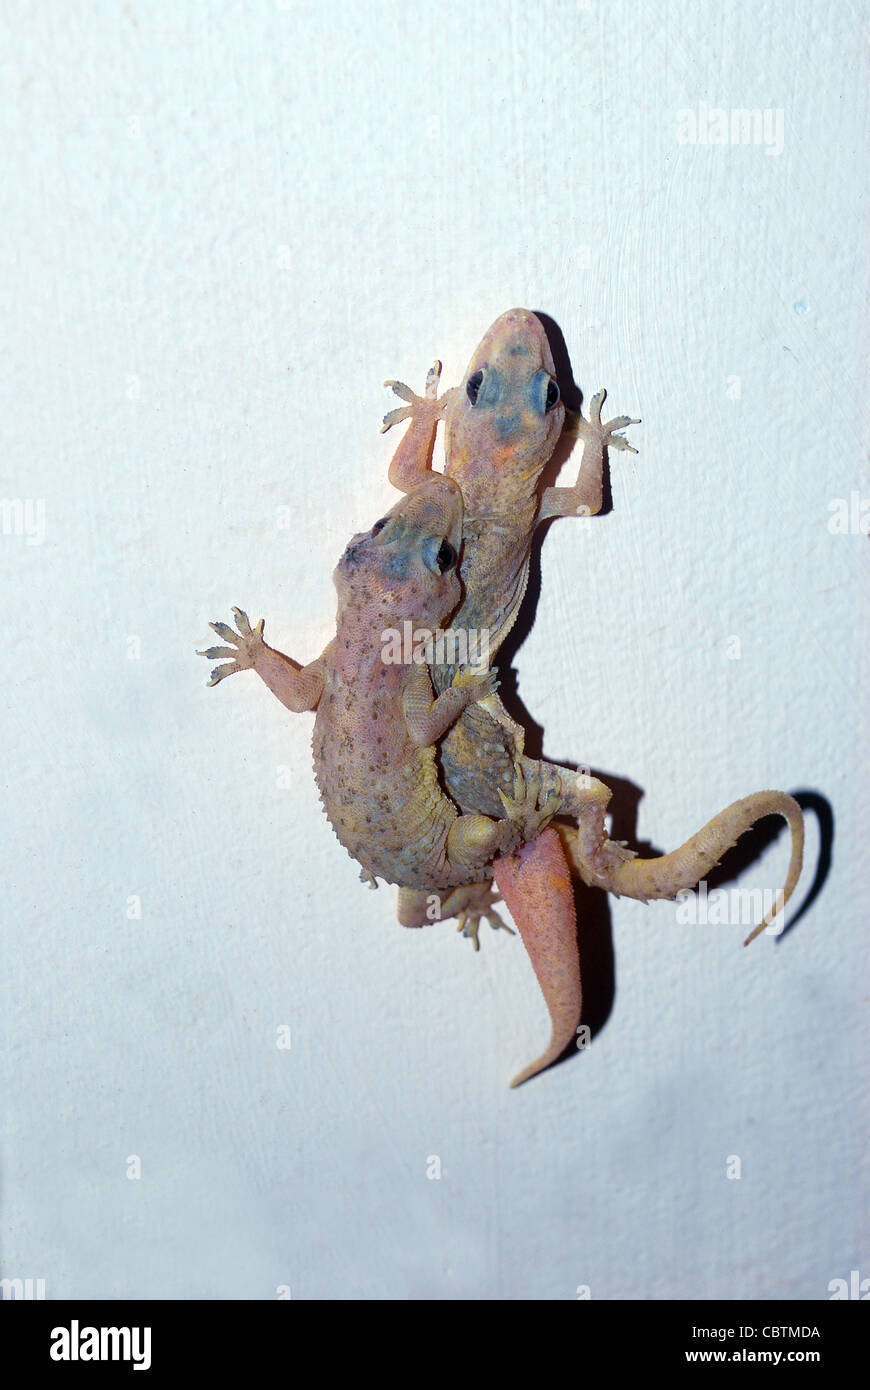 wall lizard gecko stock photos u0026 wall lizard gecko stock images